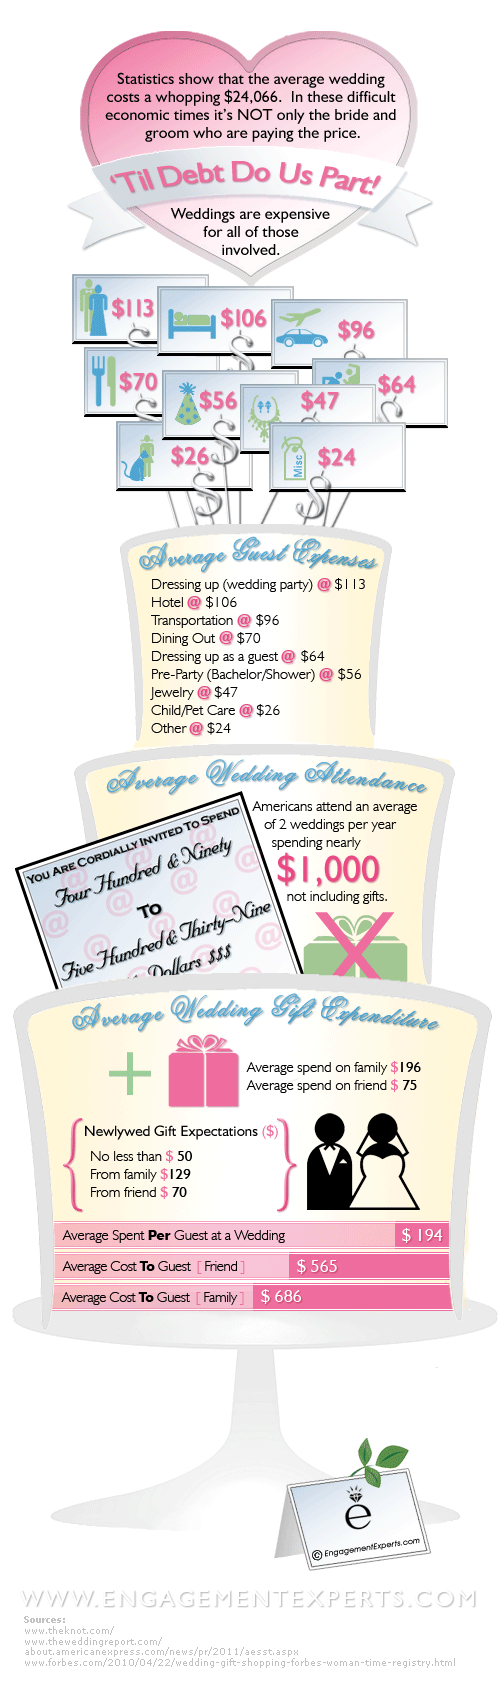 An infographic describing all the costs associated with being a wedding guest